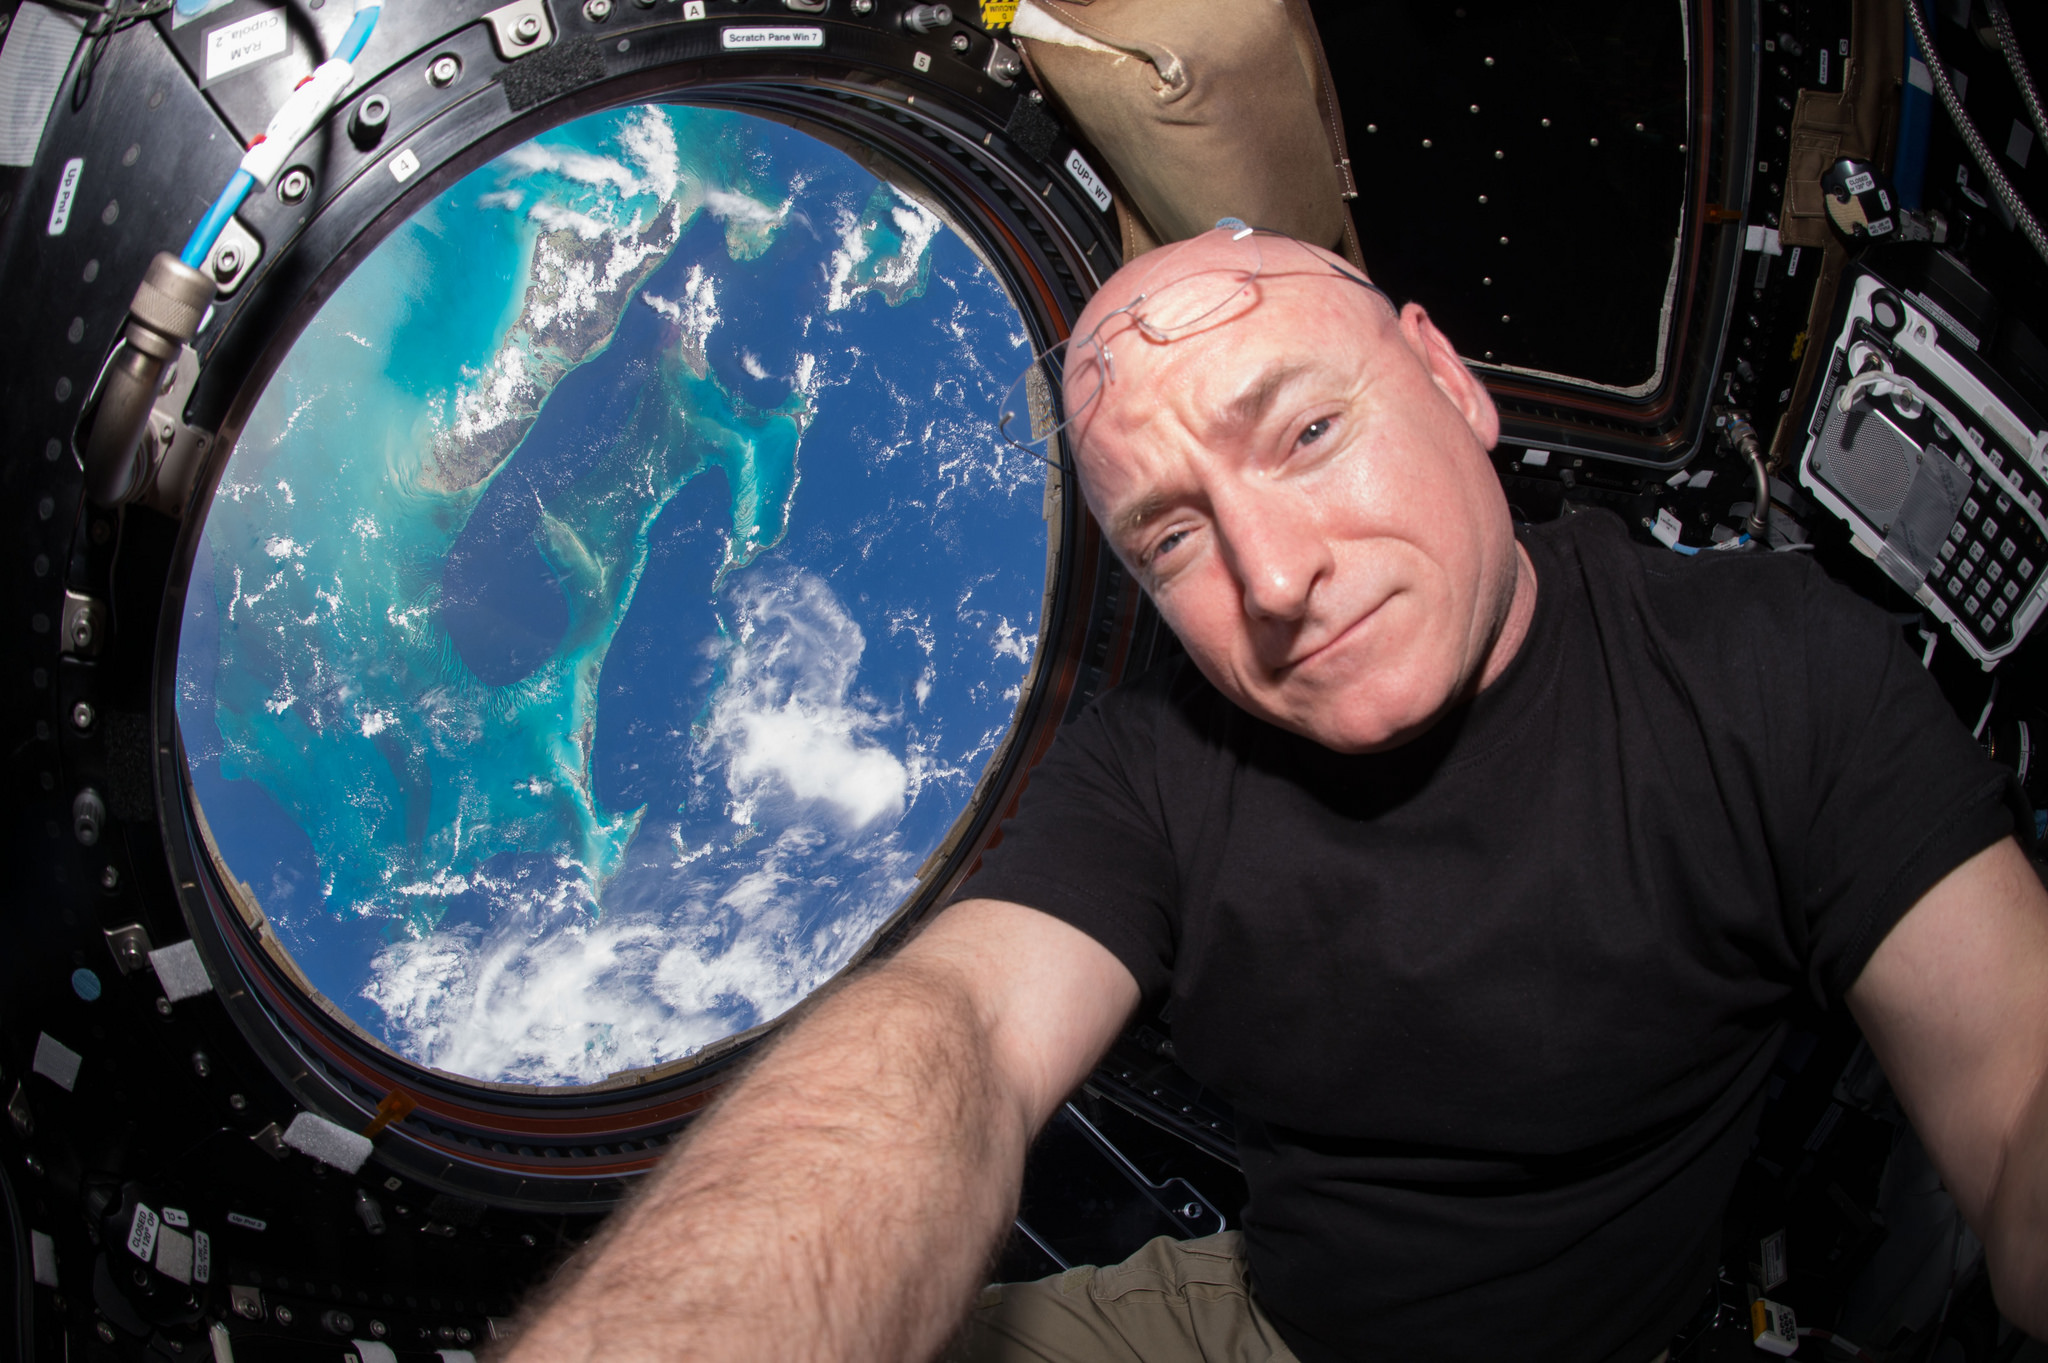 1-Year Astronaut Scott Kelly on the Space Station